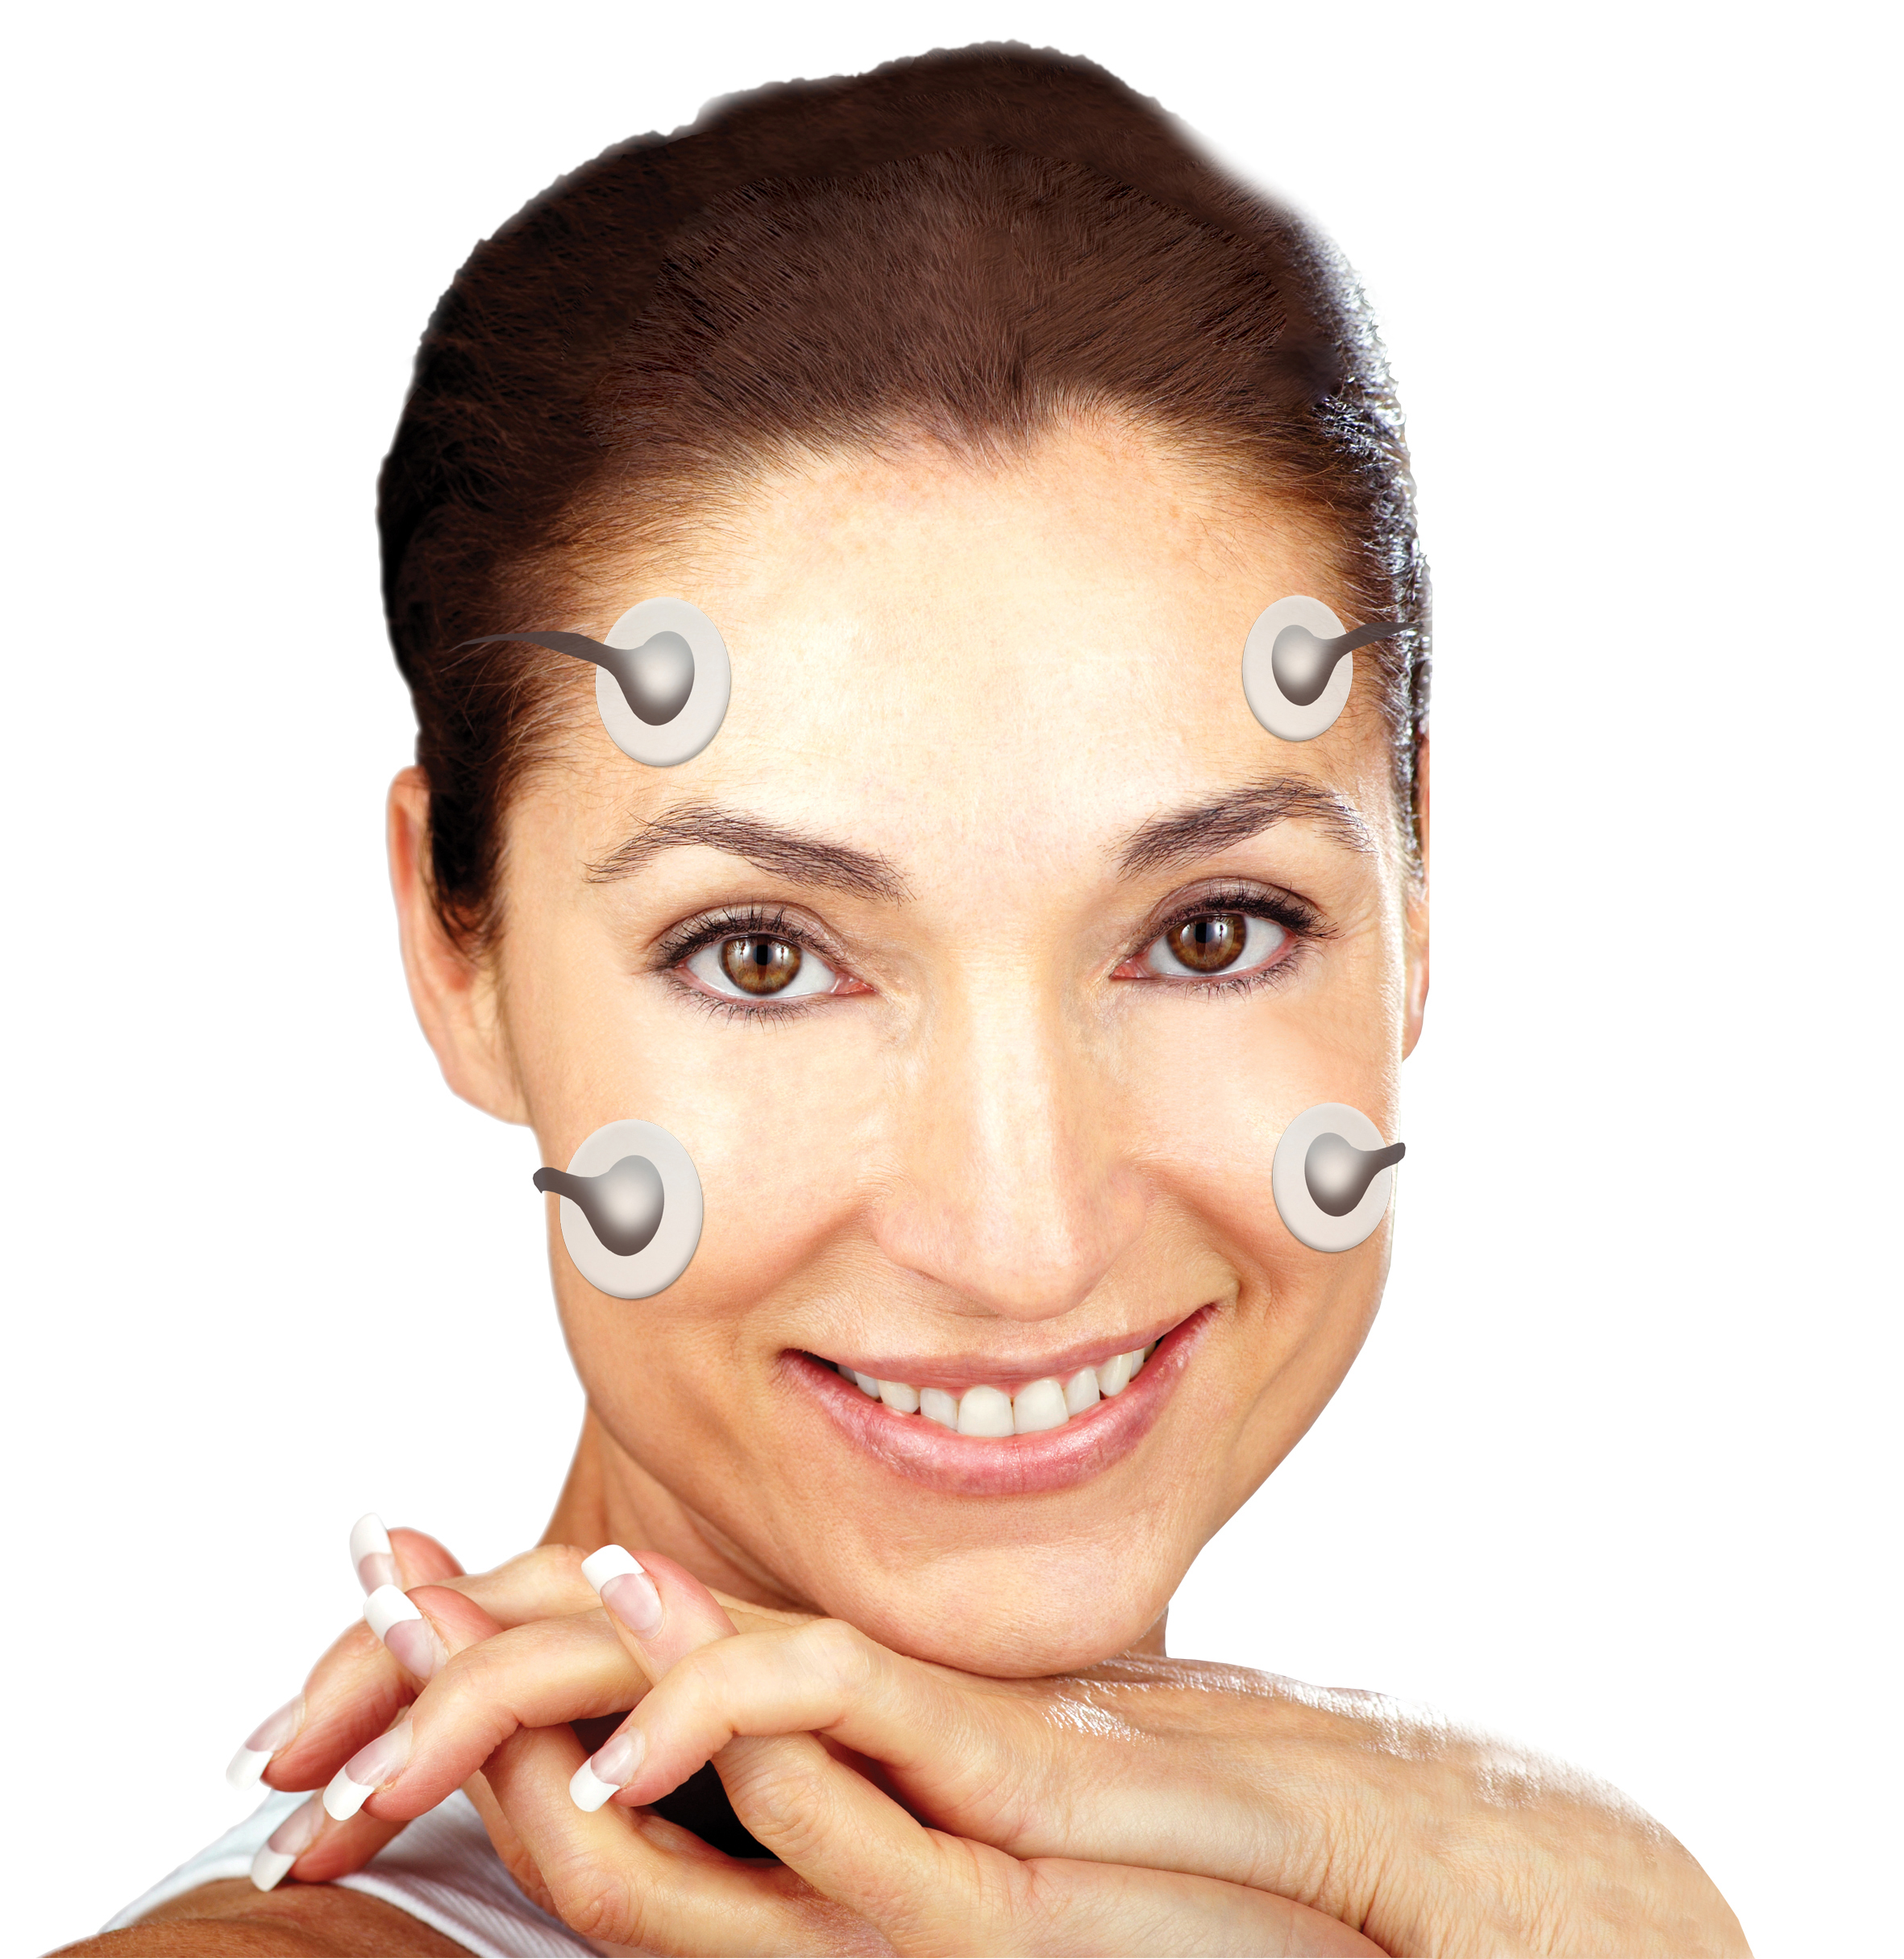 Club Cleo's Cleo Q is a neurocosmetic that releases endorphins and helps women look and feel great.